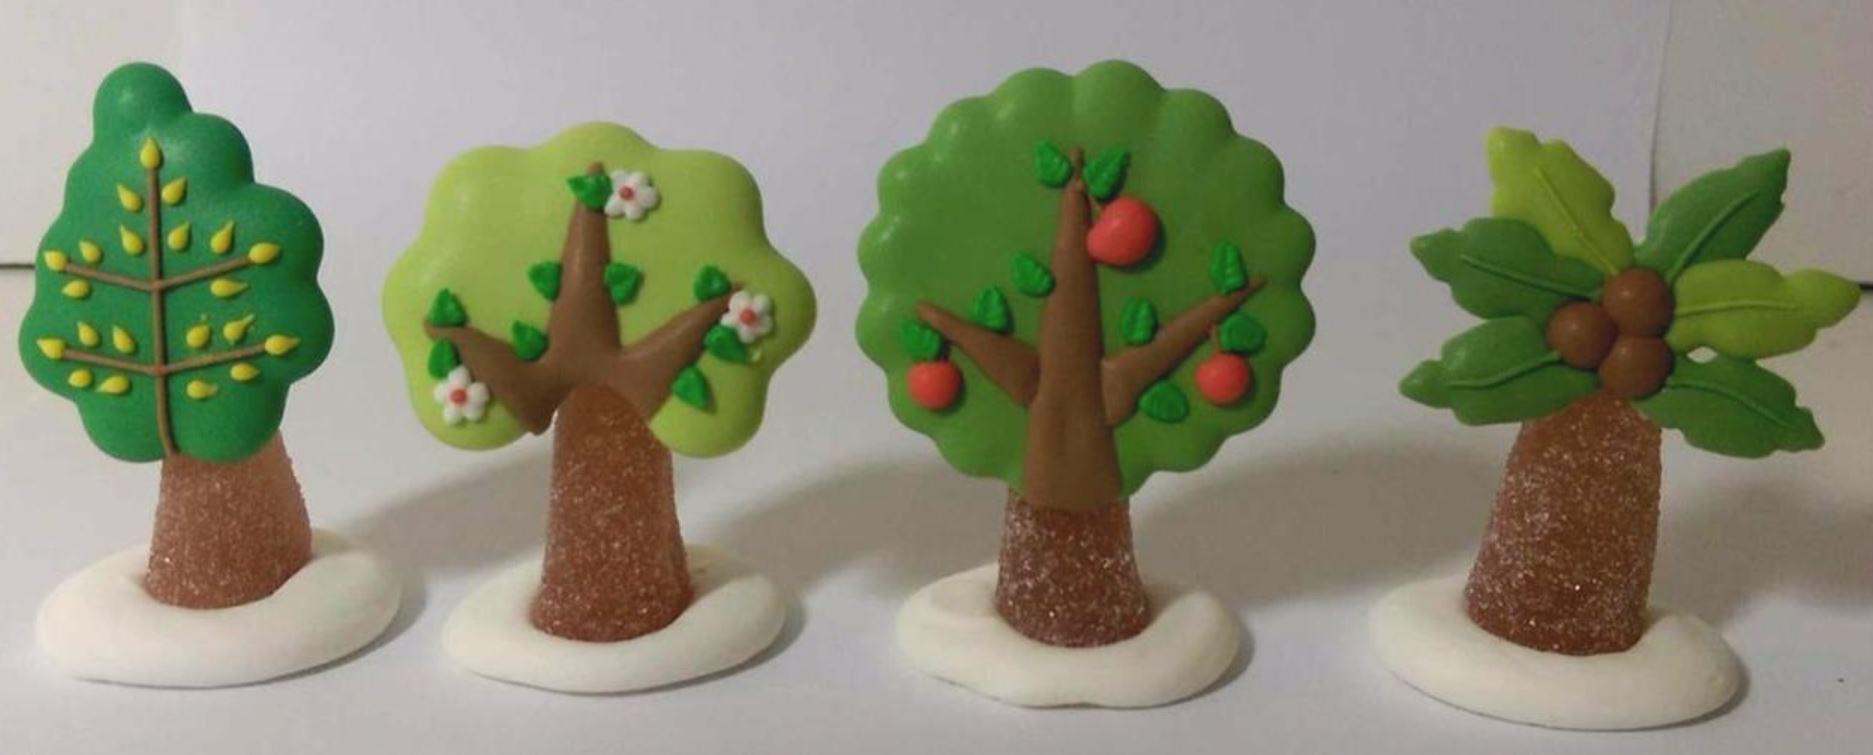 Various tree designs Icing sugar cake decoration - Tamworth West Midlands